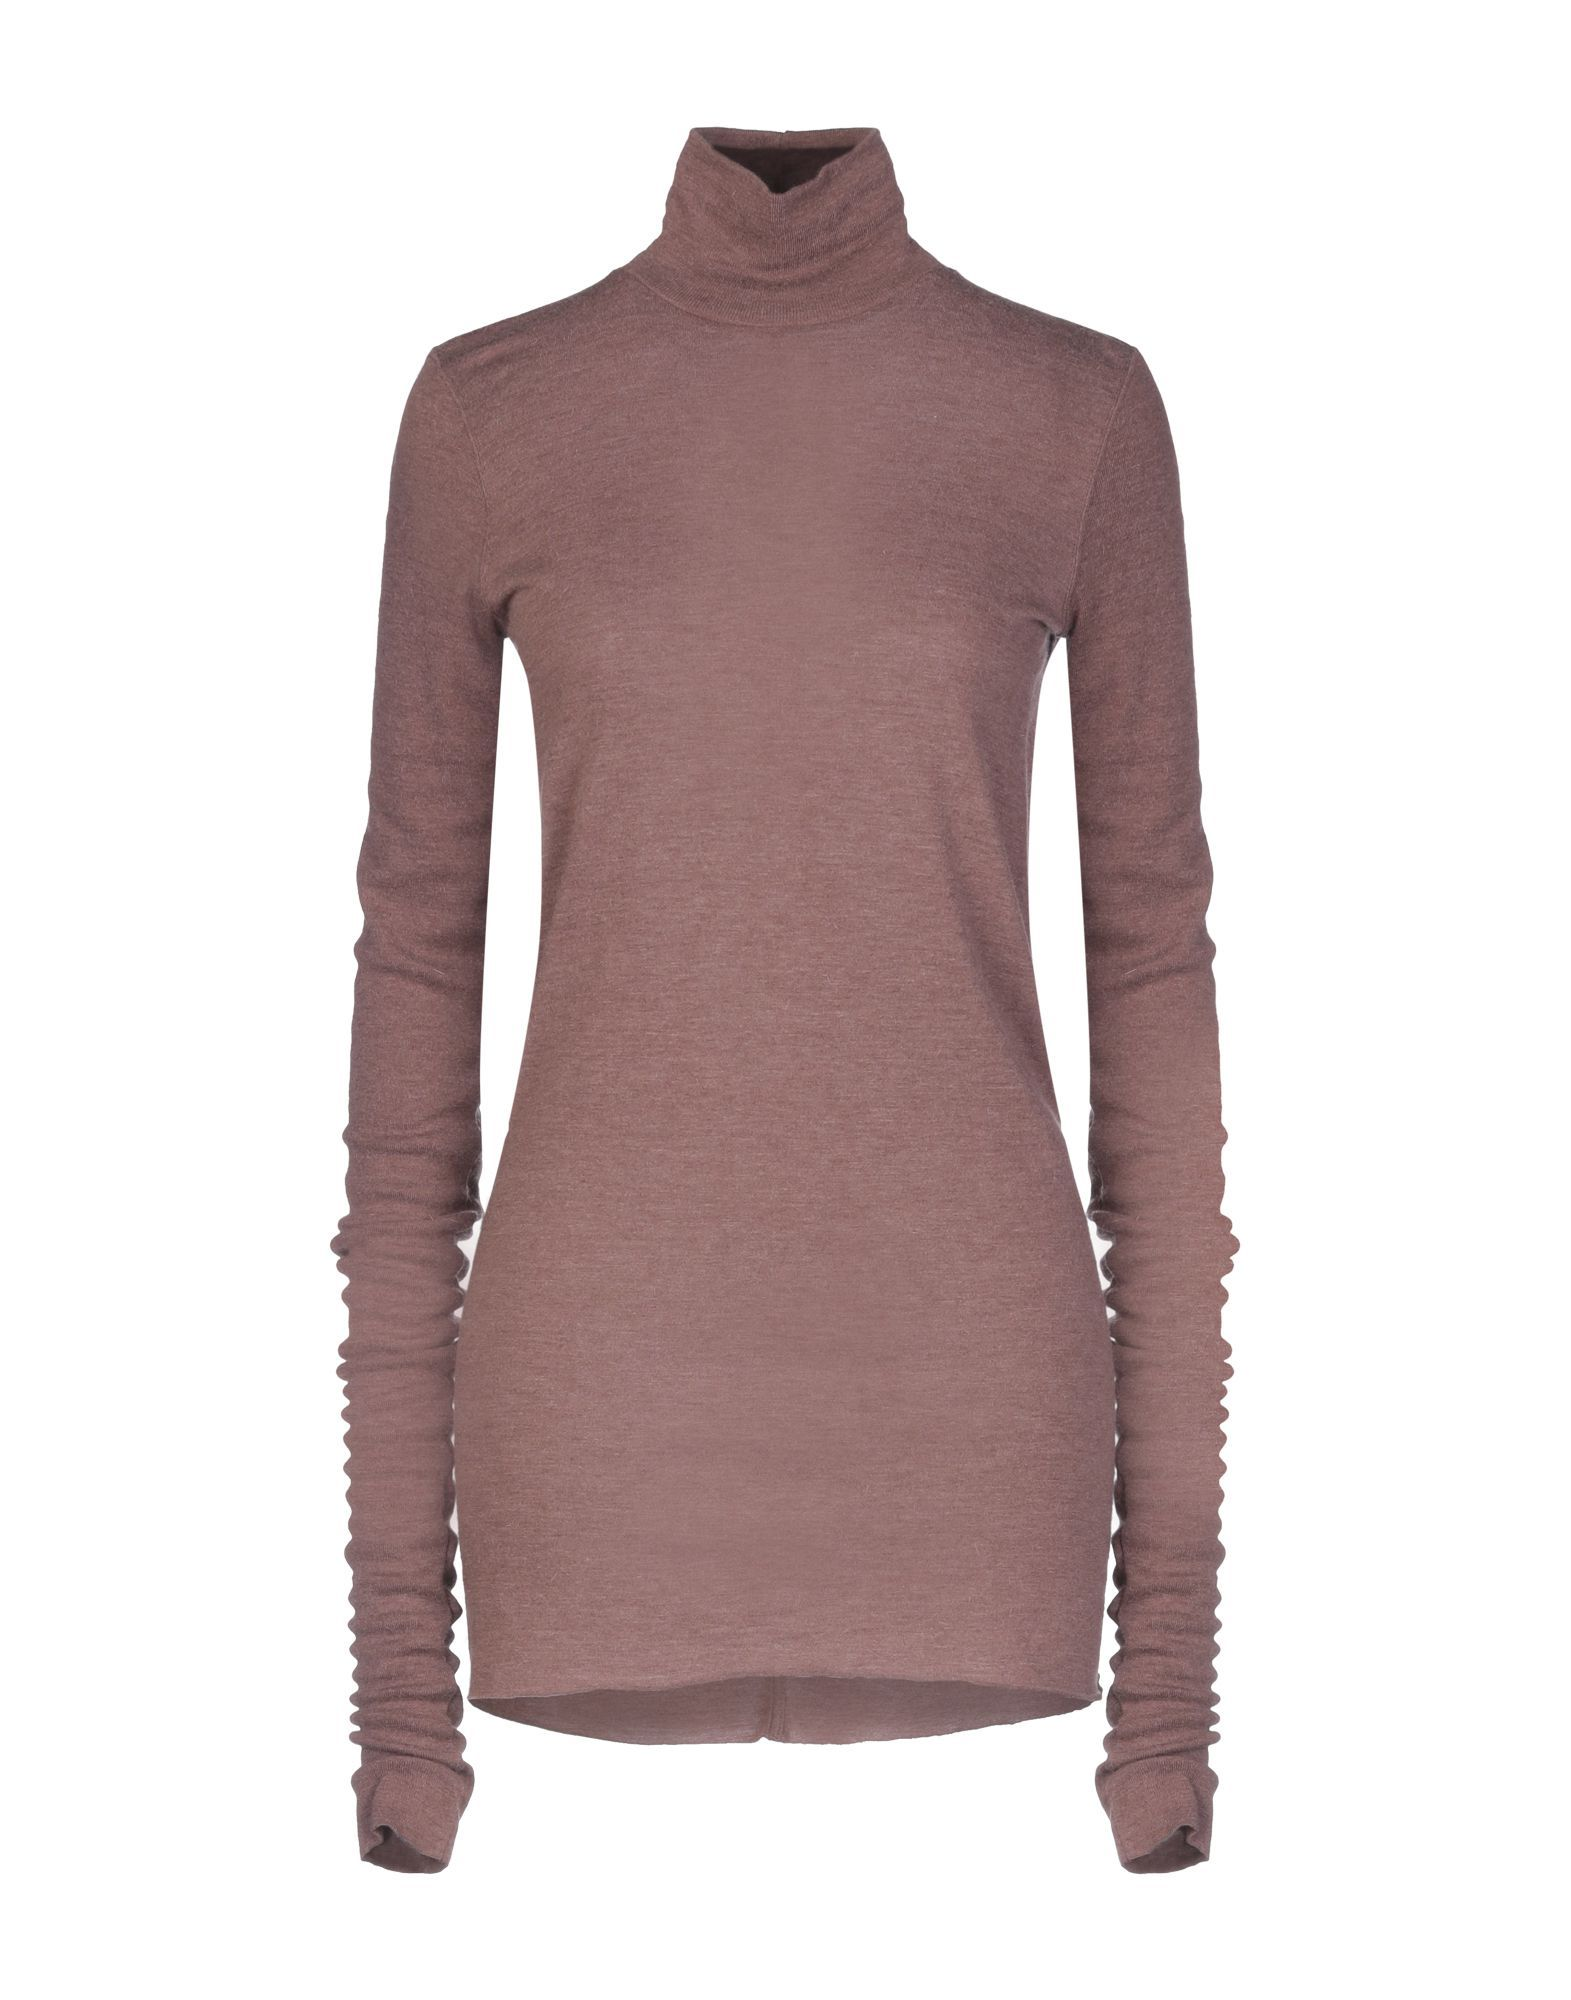 Rick Owens Lilies Cocoa Long Sleeve Knit